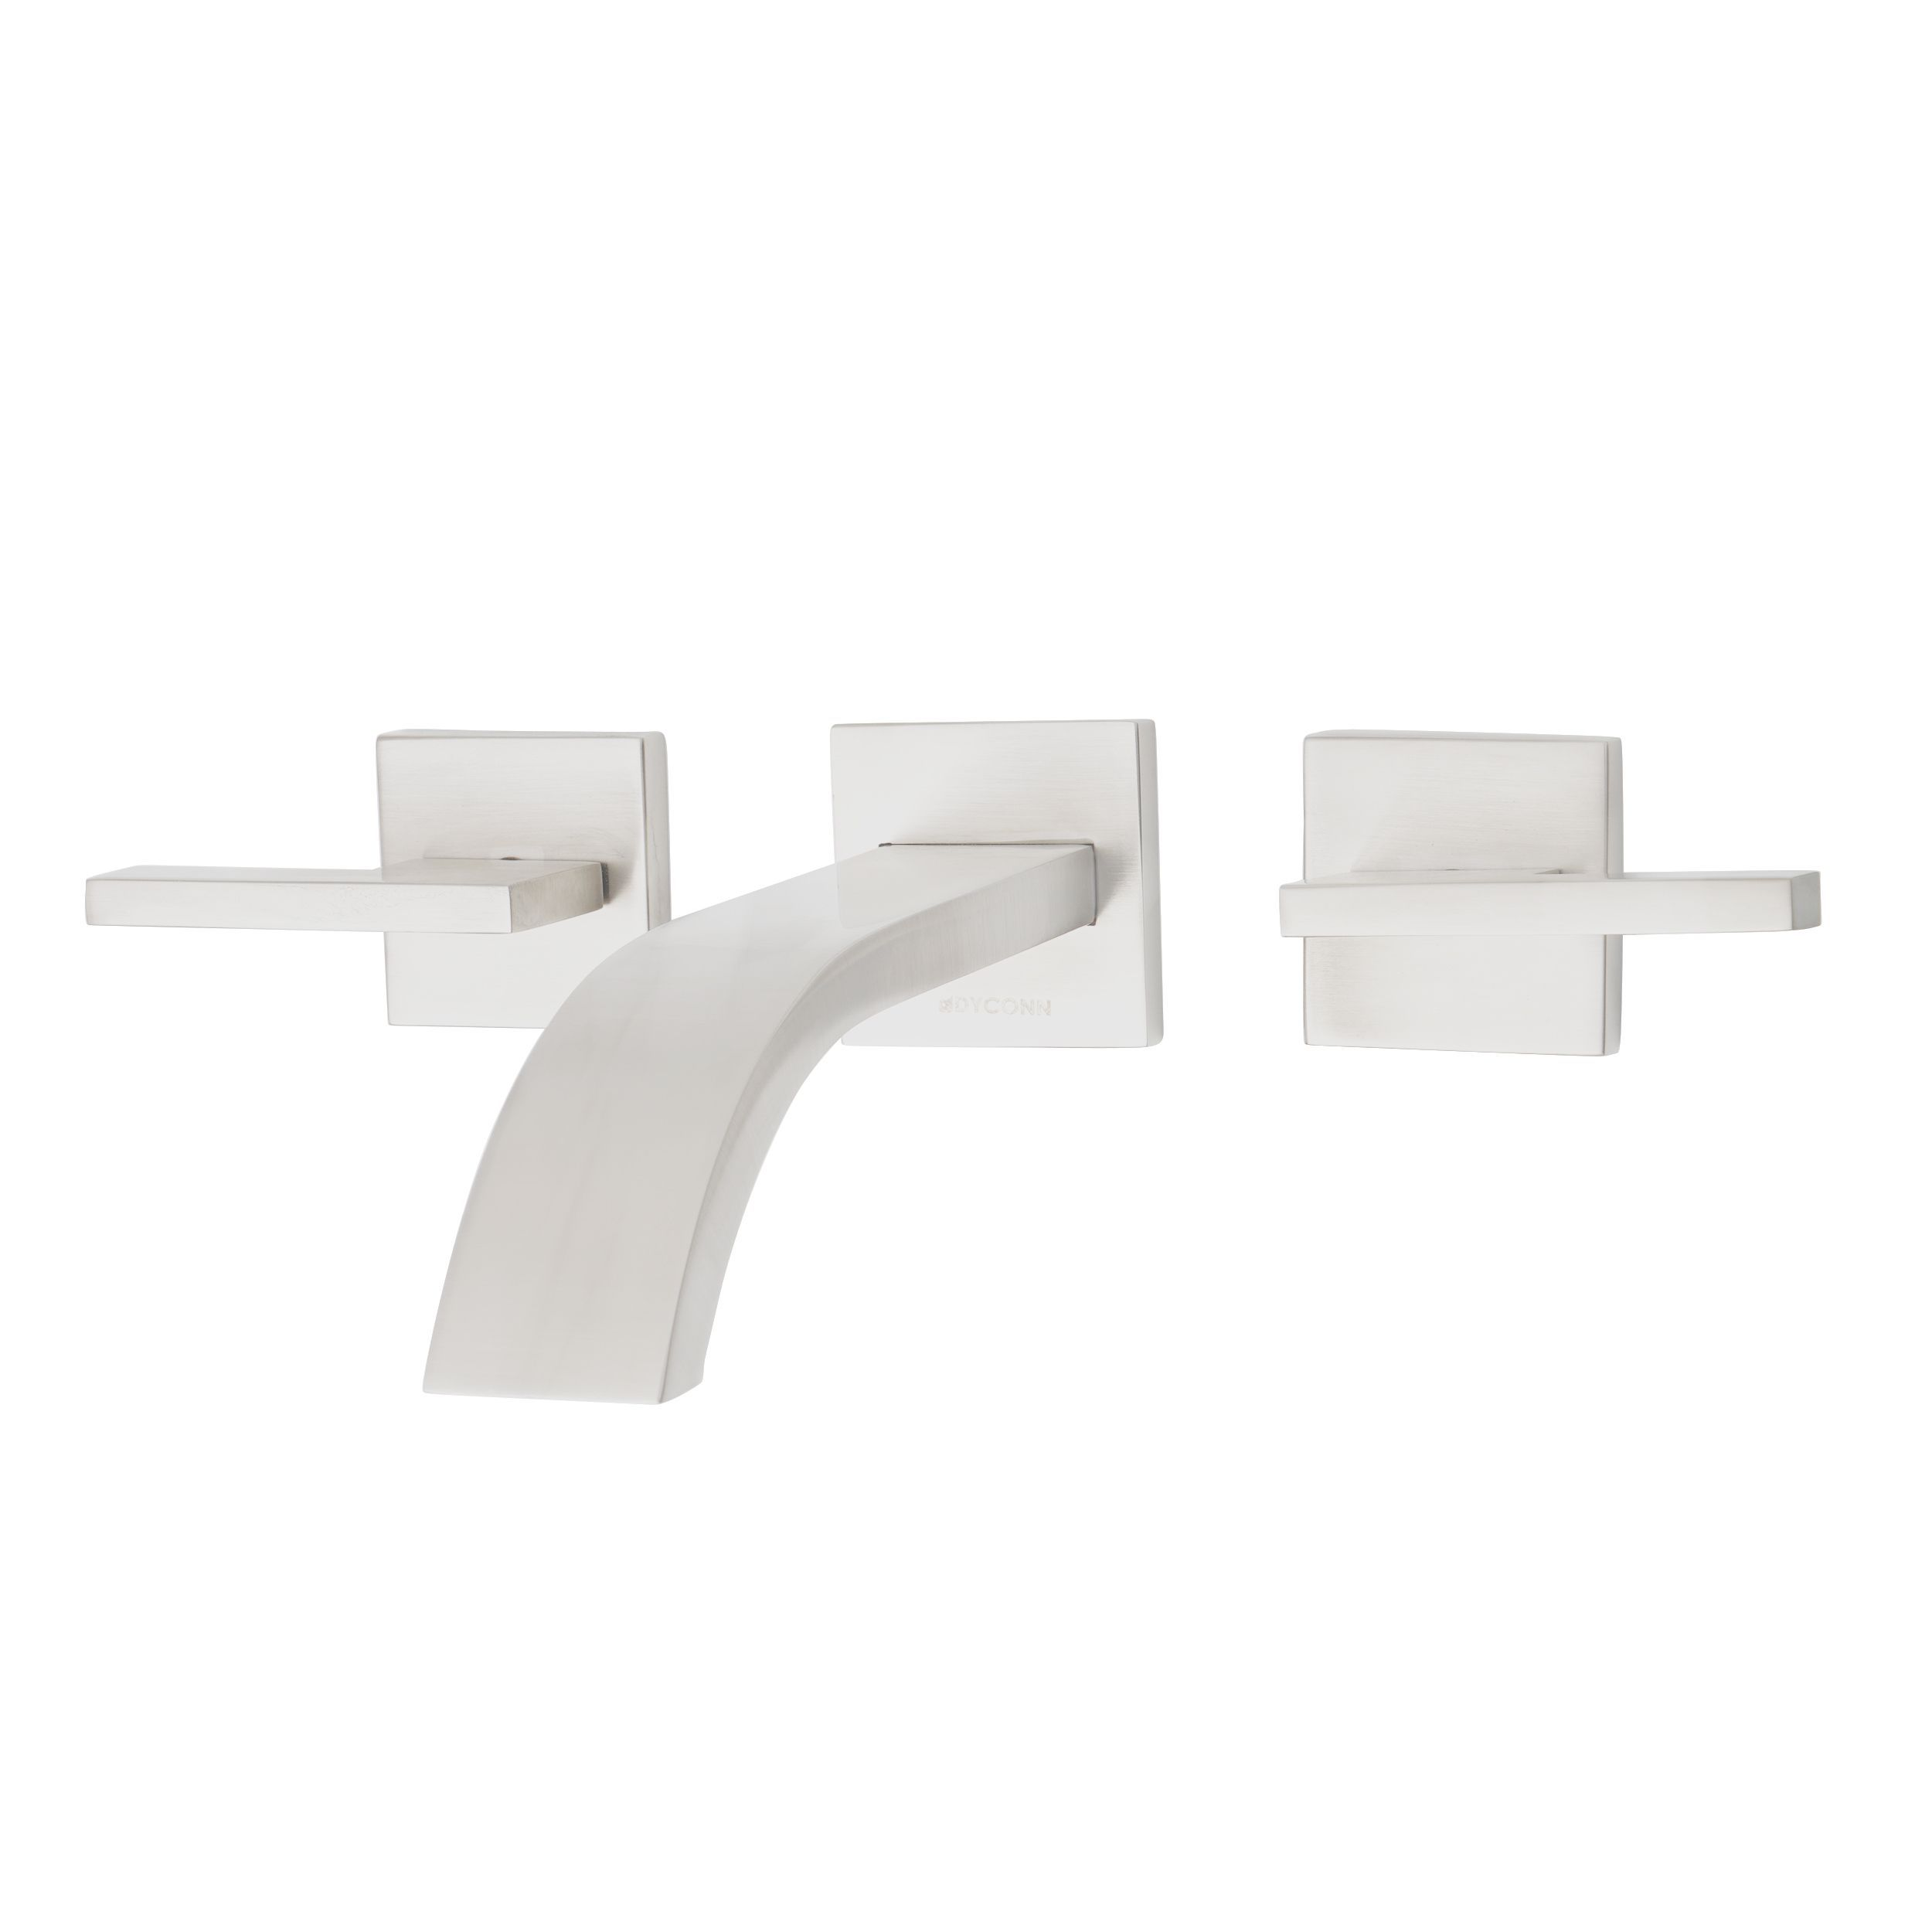 Dyconn Faucet Signature Series Two Handle Modern Wall Mount